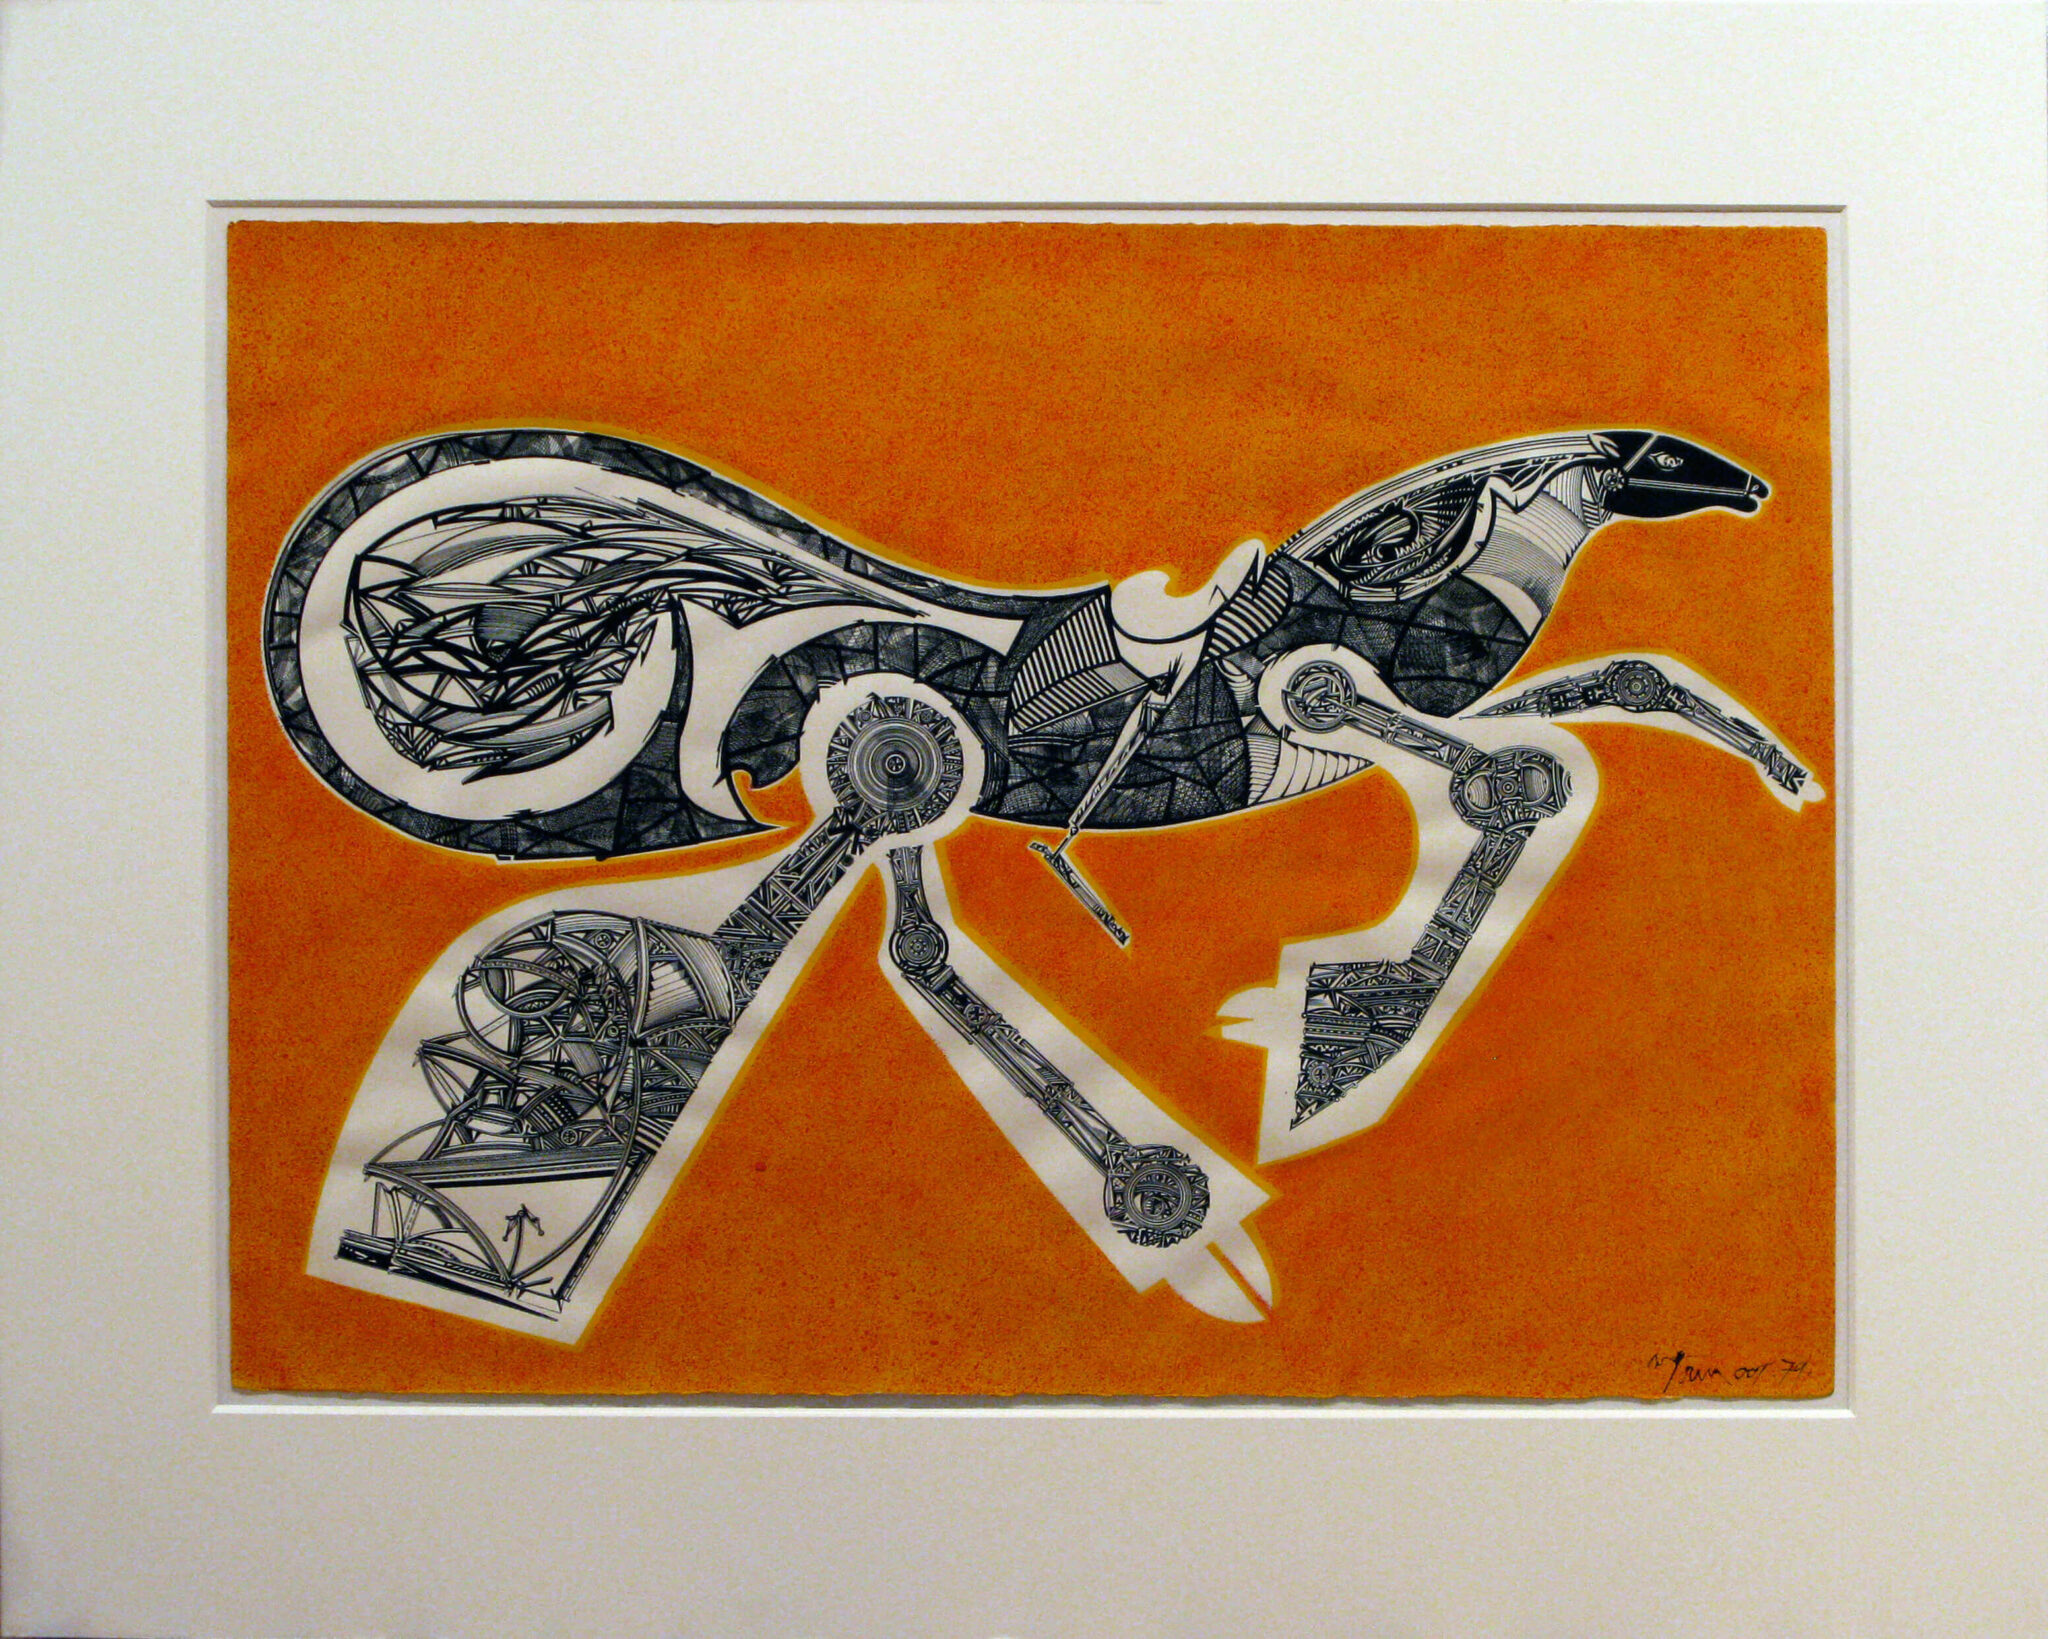 Harold Town, Toy Horse No. 184, 1979